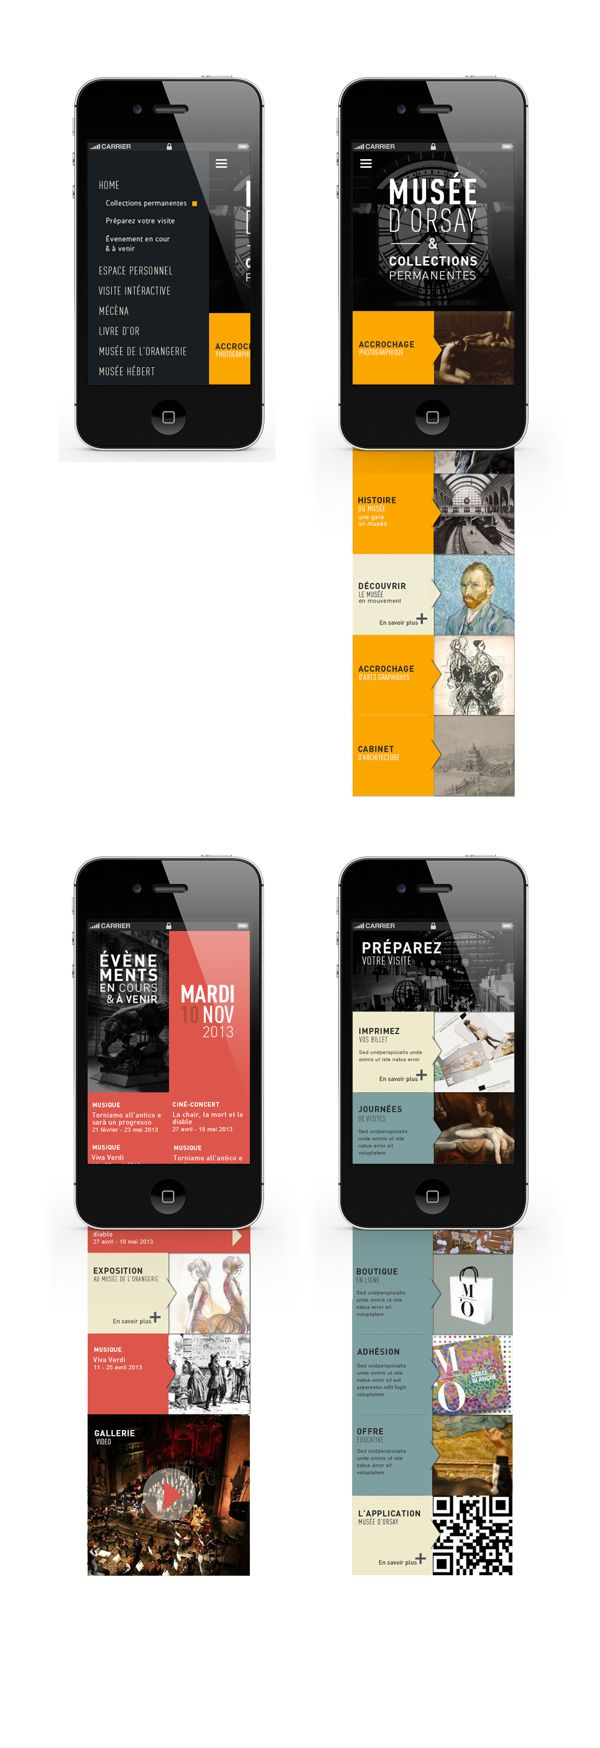 Orsay Museum by Jeremy Perrot-Minnot, via Behance, great way to display mobile…